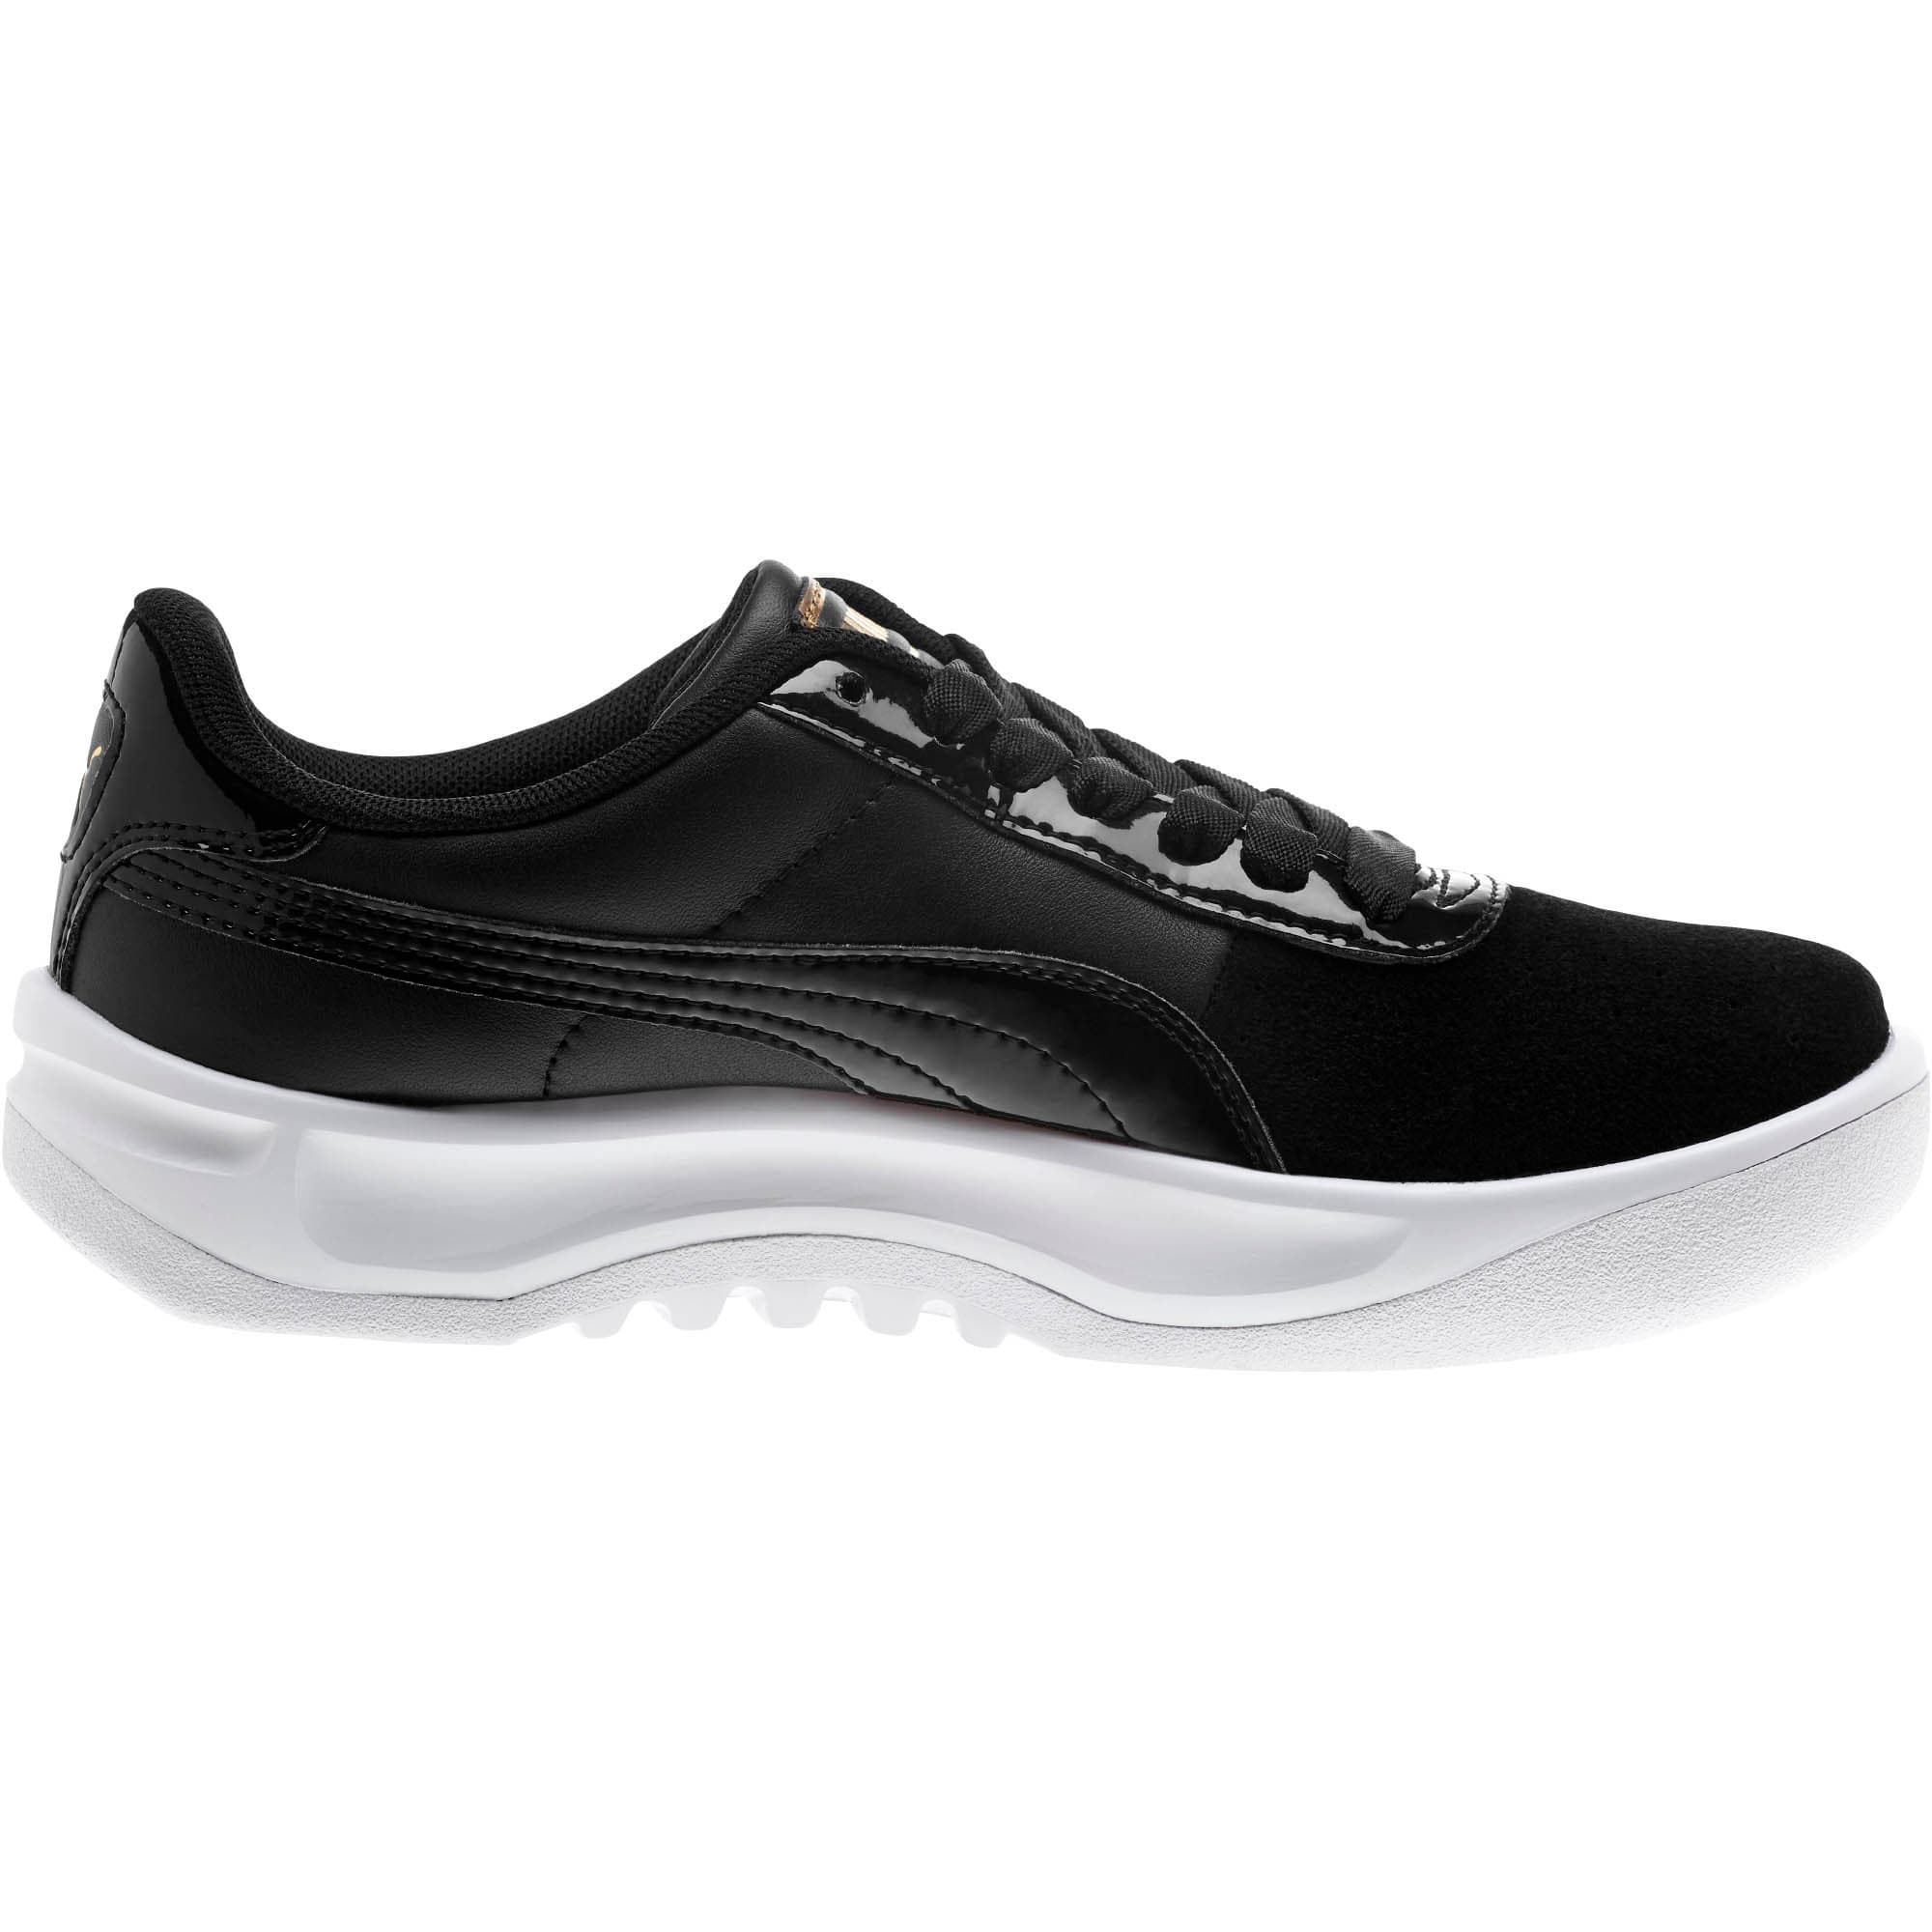 Thumbnail 4 of California Monochrome Women's Sneakers, Puma Black-Puma Team Gold, medium